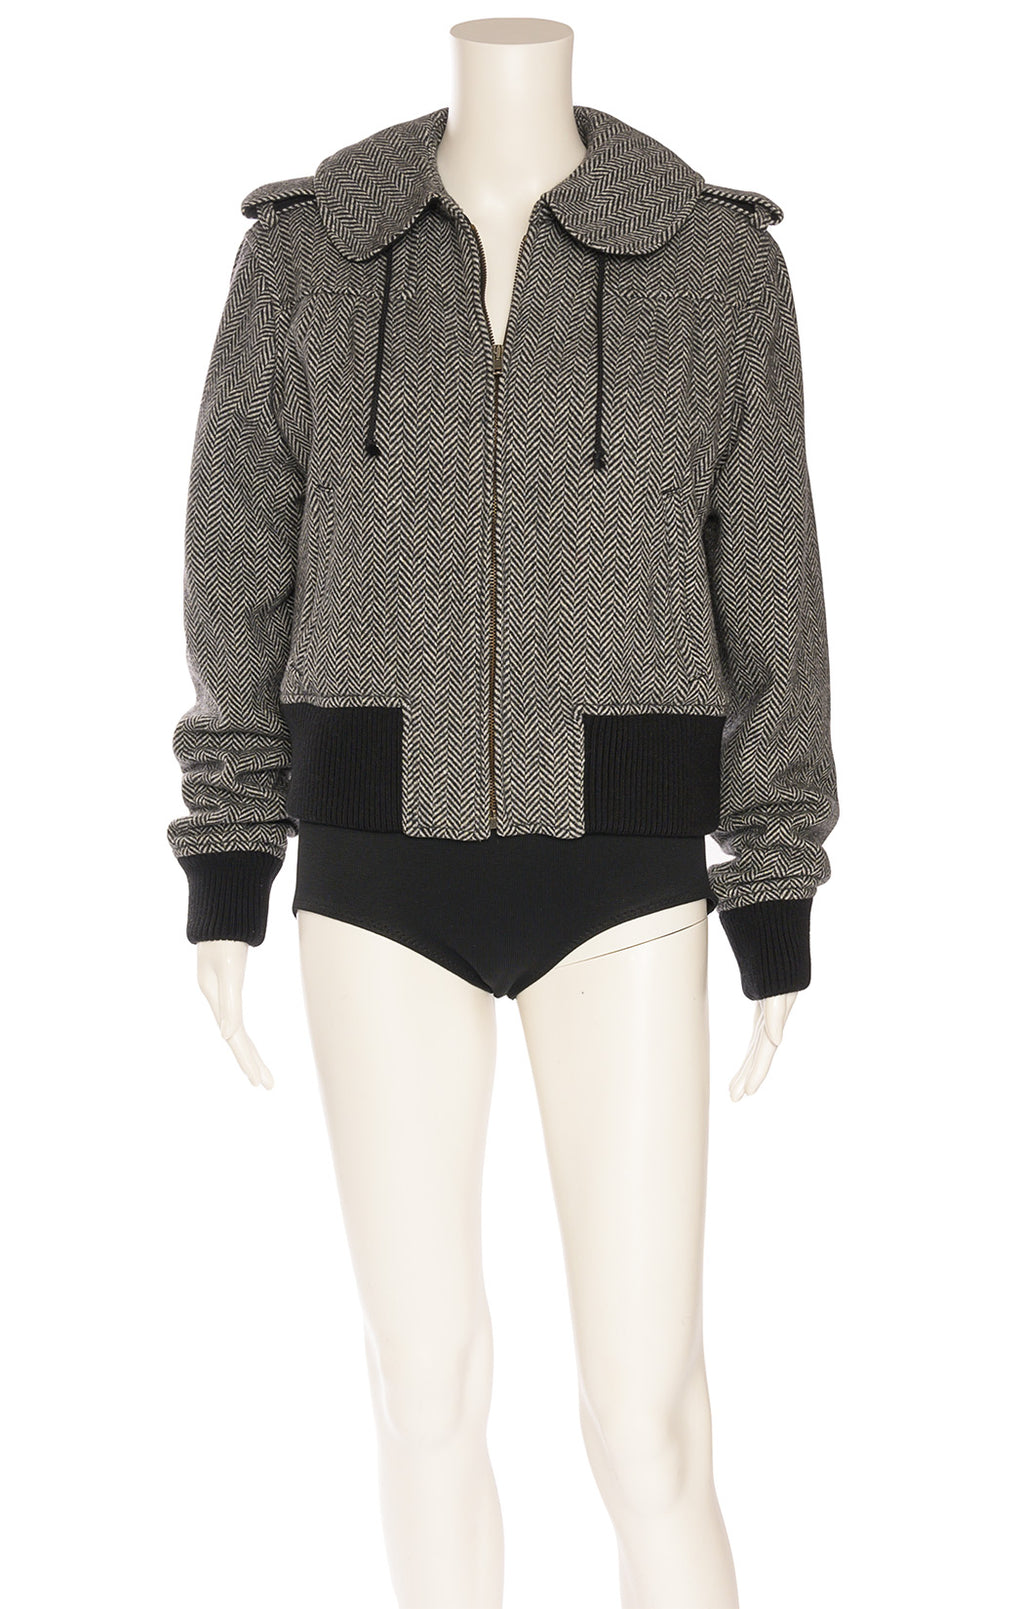 Black and white herringbone zipper front jacket